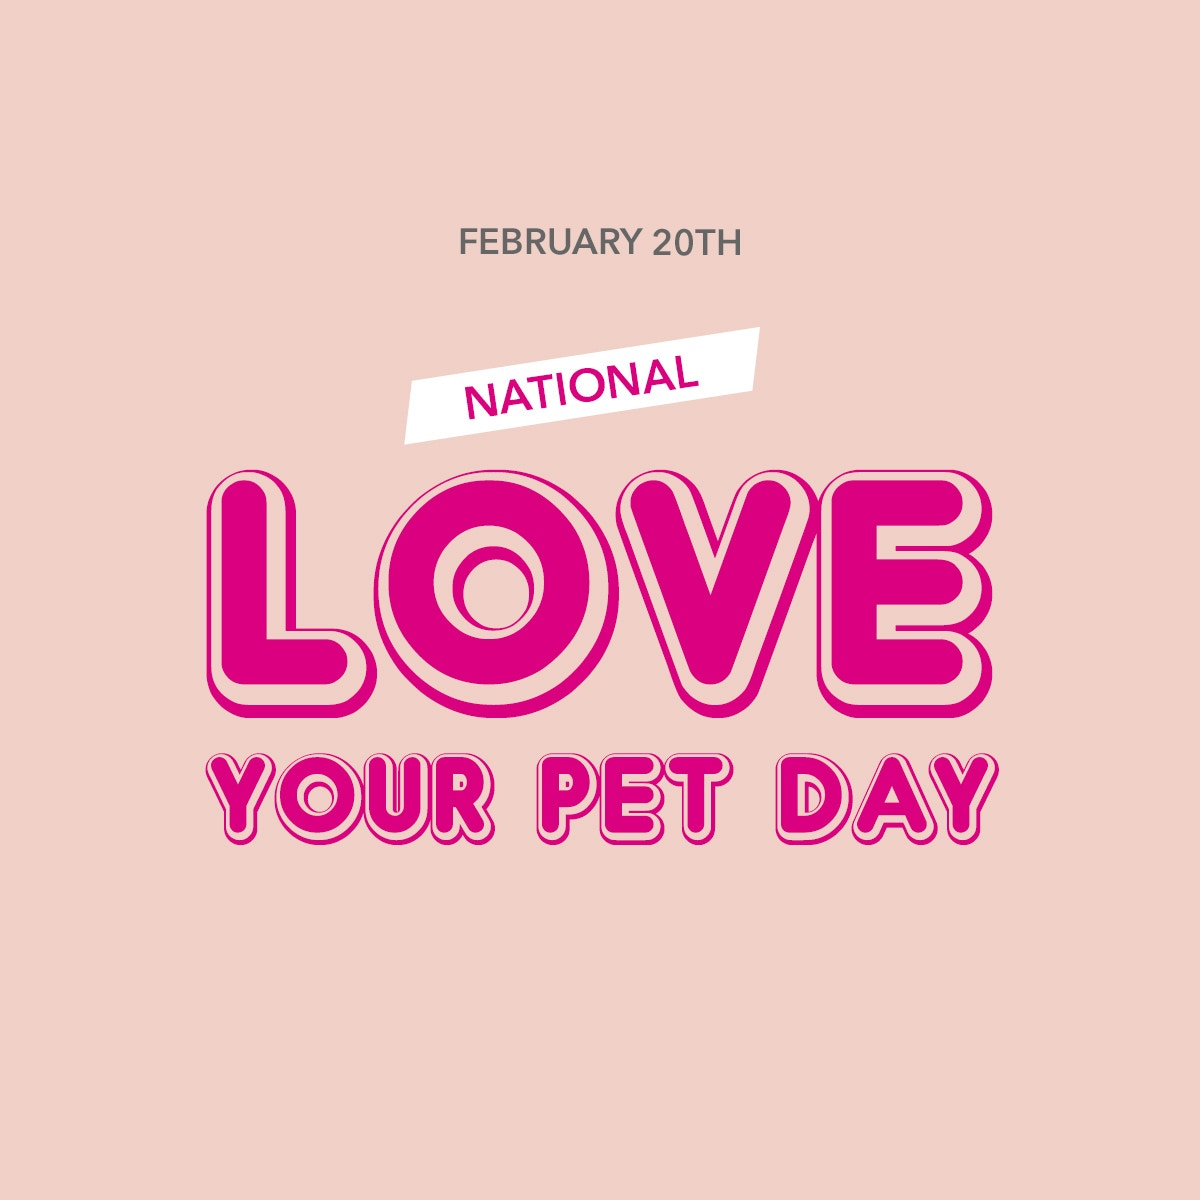 Valentines day for you Pet! http://go.youravon.com/3jpmxcpic.twitter.com/zPVFcgyMDM